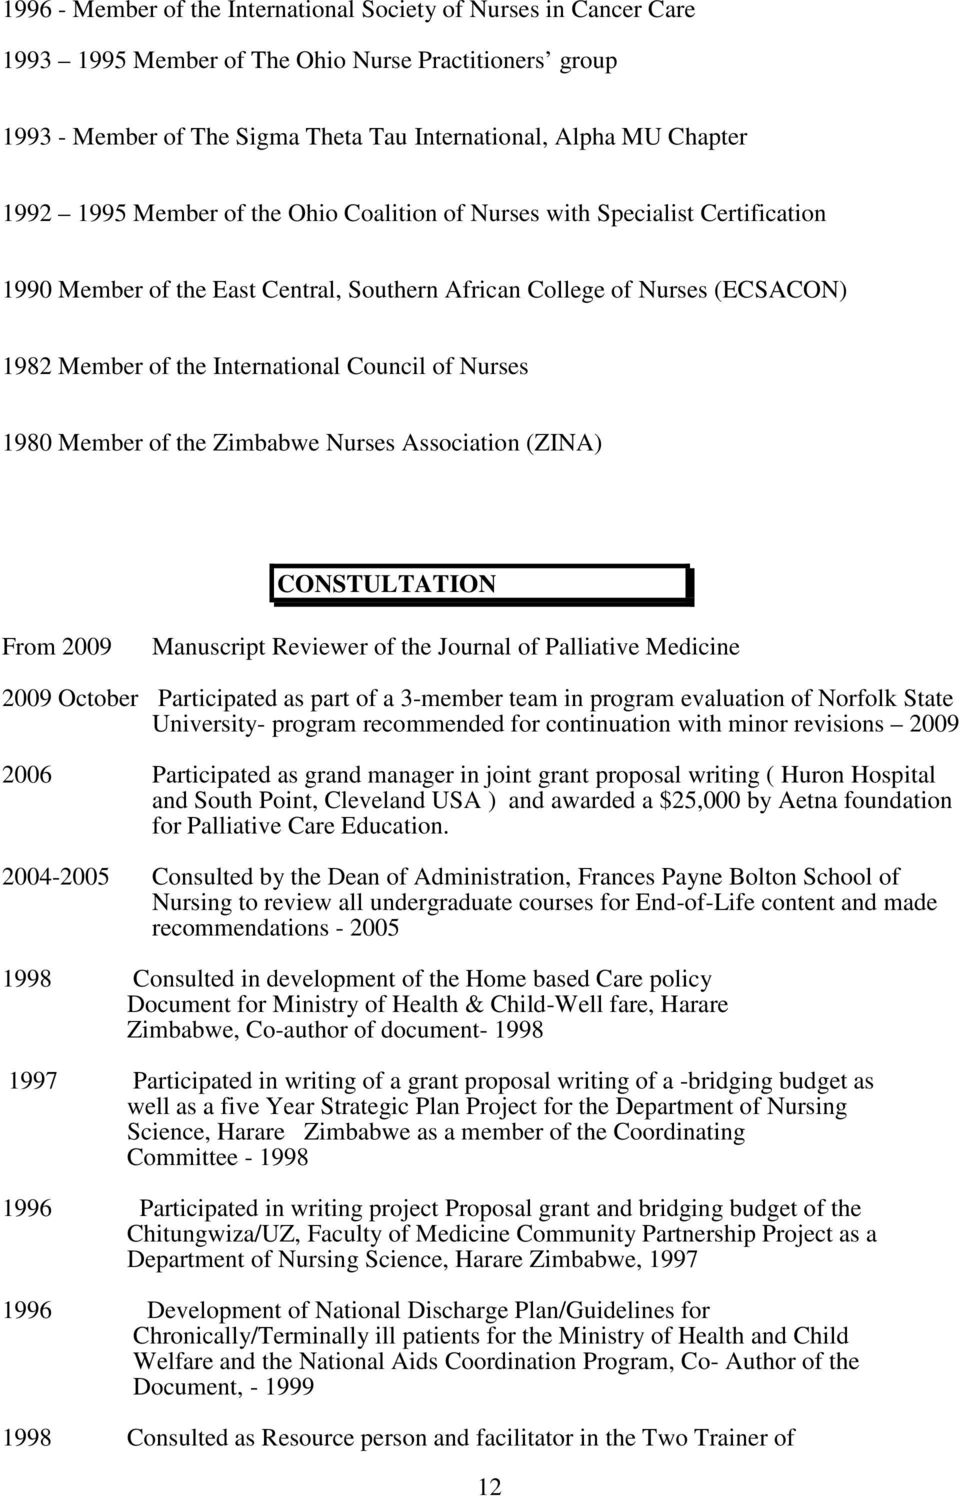 Nurses 1980 Member of the Zimbabwe Nurses Association (ZINA) CONSTULTATION From 2009 Manuscript Reviewer of the Journal of Palliative Medicine 2009 October Participated as part of a 3-member team in